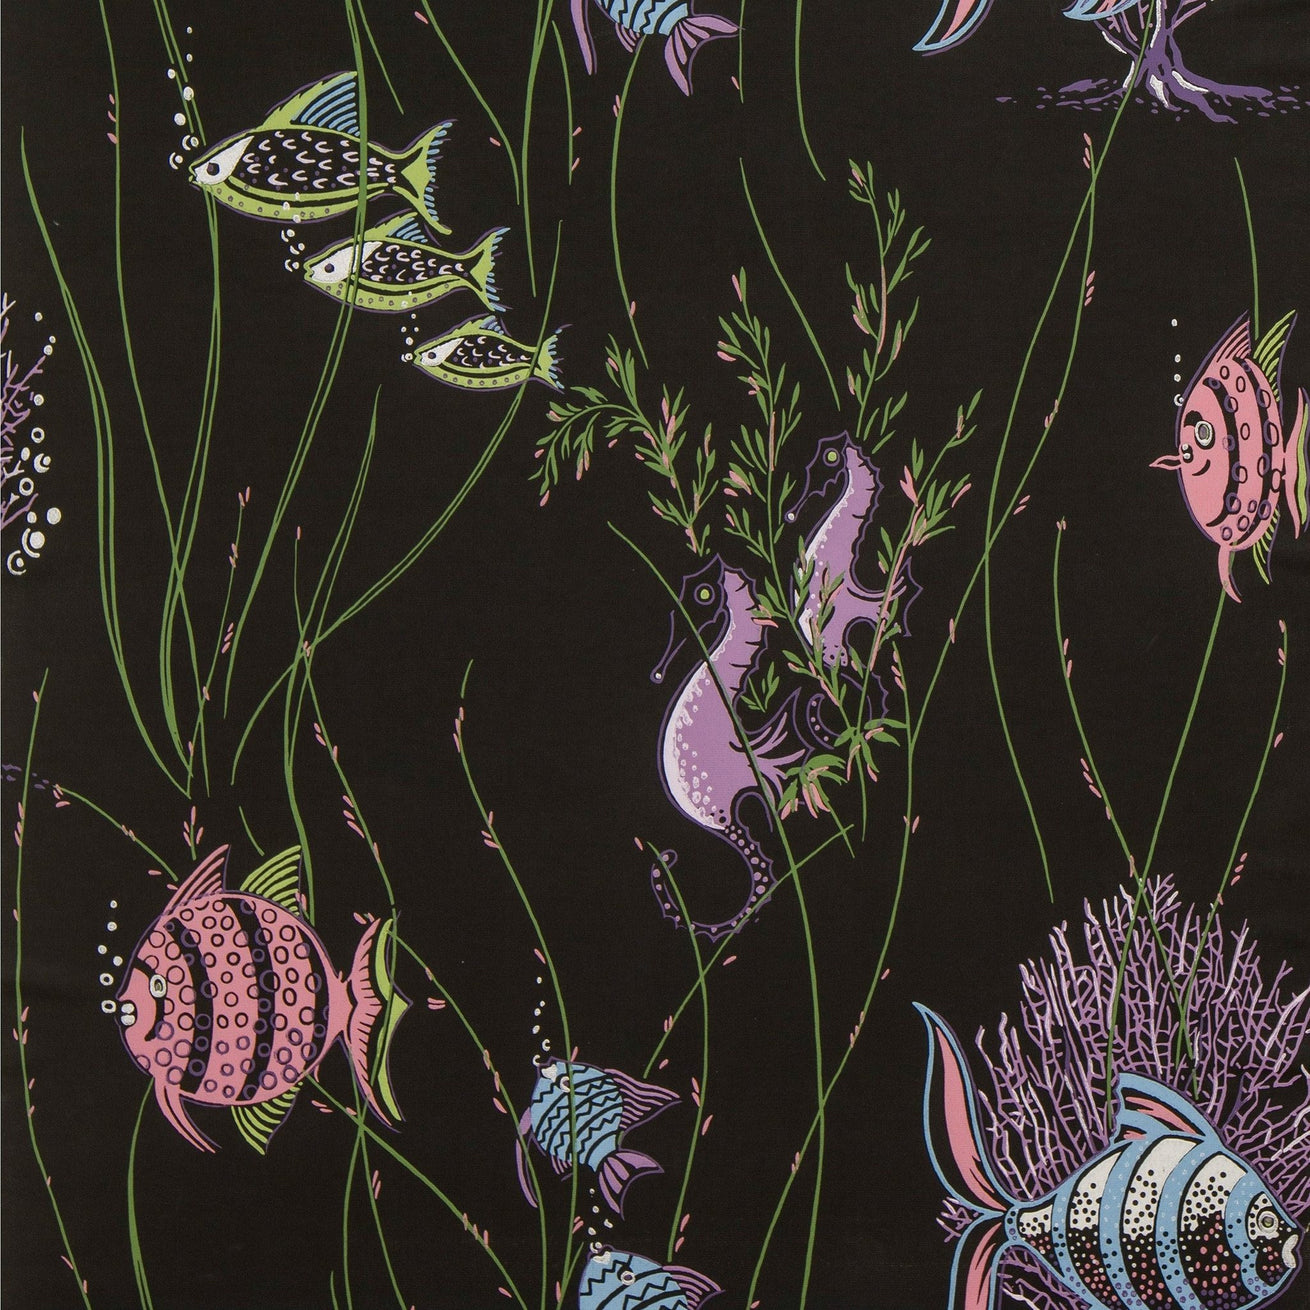 Aquatic Scene with Fish and Seaweed - Vintage Wallpaper Remnant